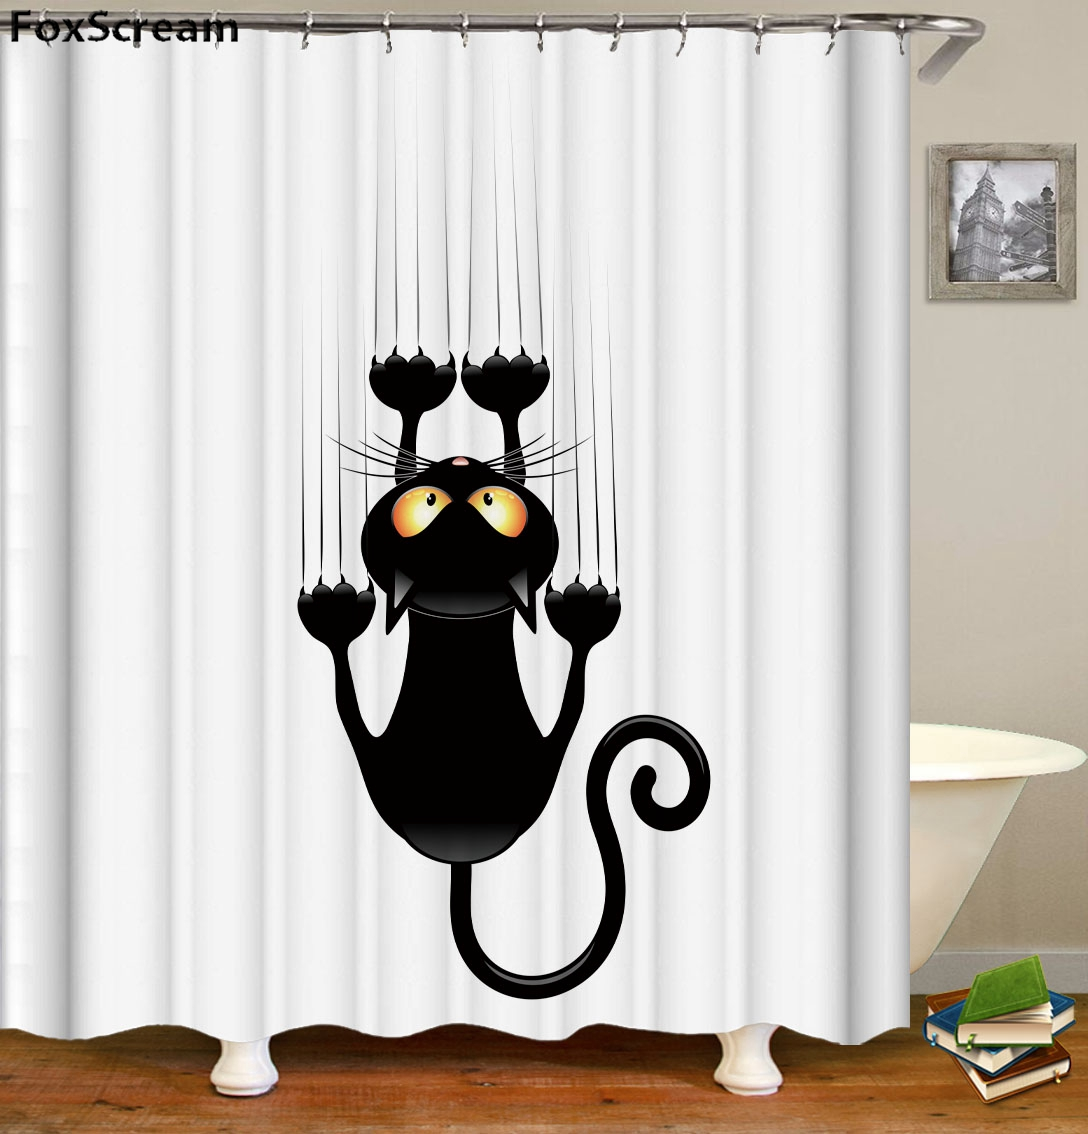 Us 6 38 29 Off Cat Bath Shower Curtain Funny Star Space Waterproof Cat Shower Curtains Bathroom Curtain Fabric Curtains For Bathroom Or Mat In